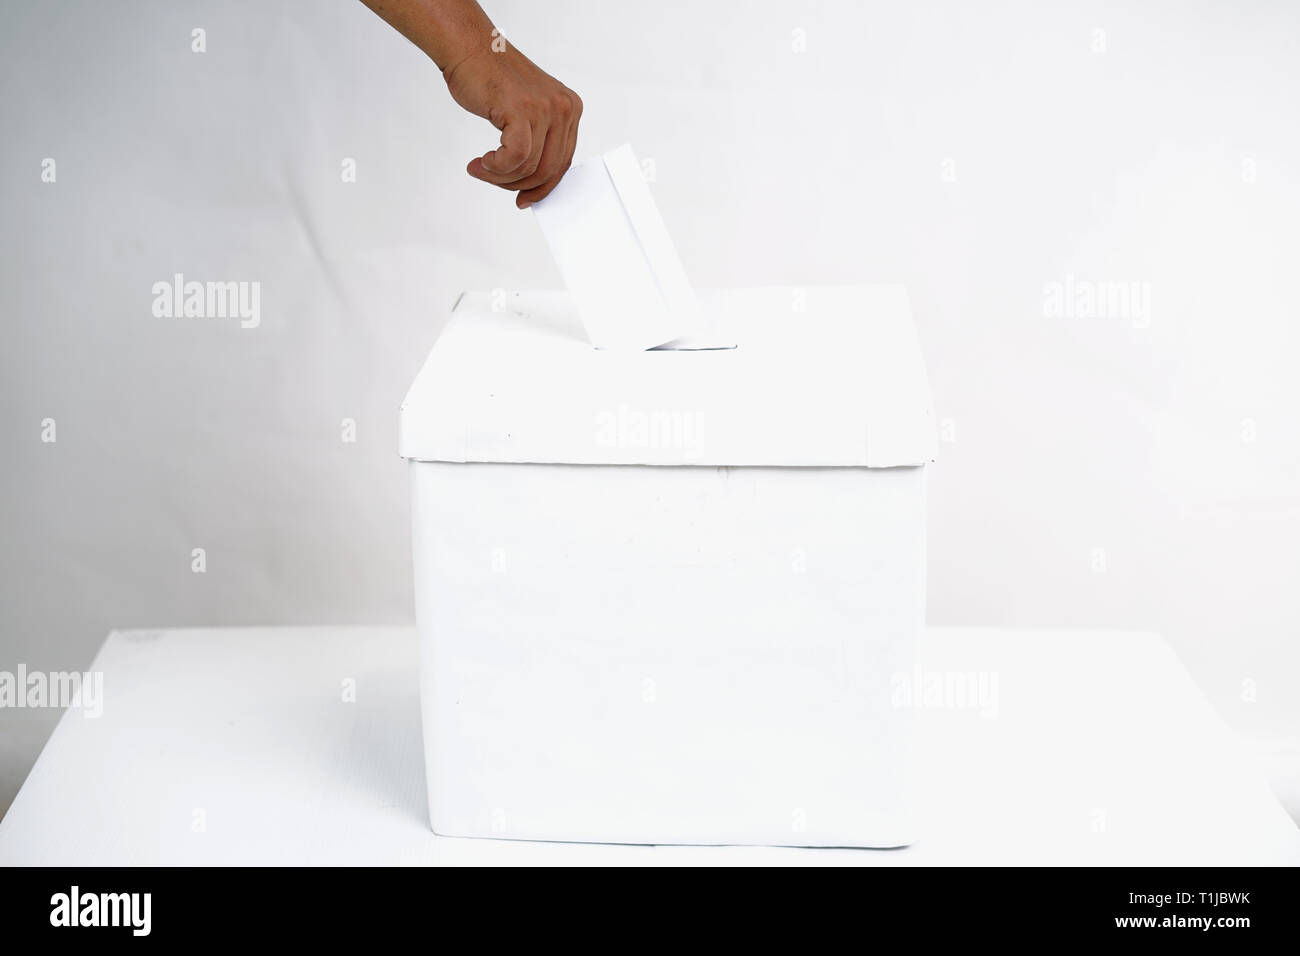 The hand putting a ballot in the ballot box - Stock Image